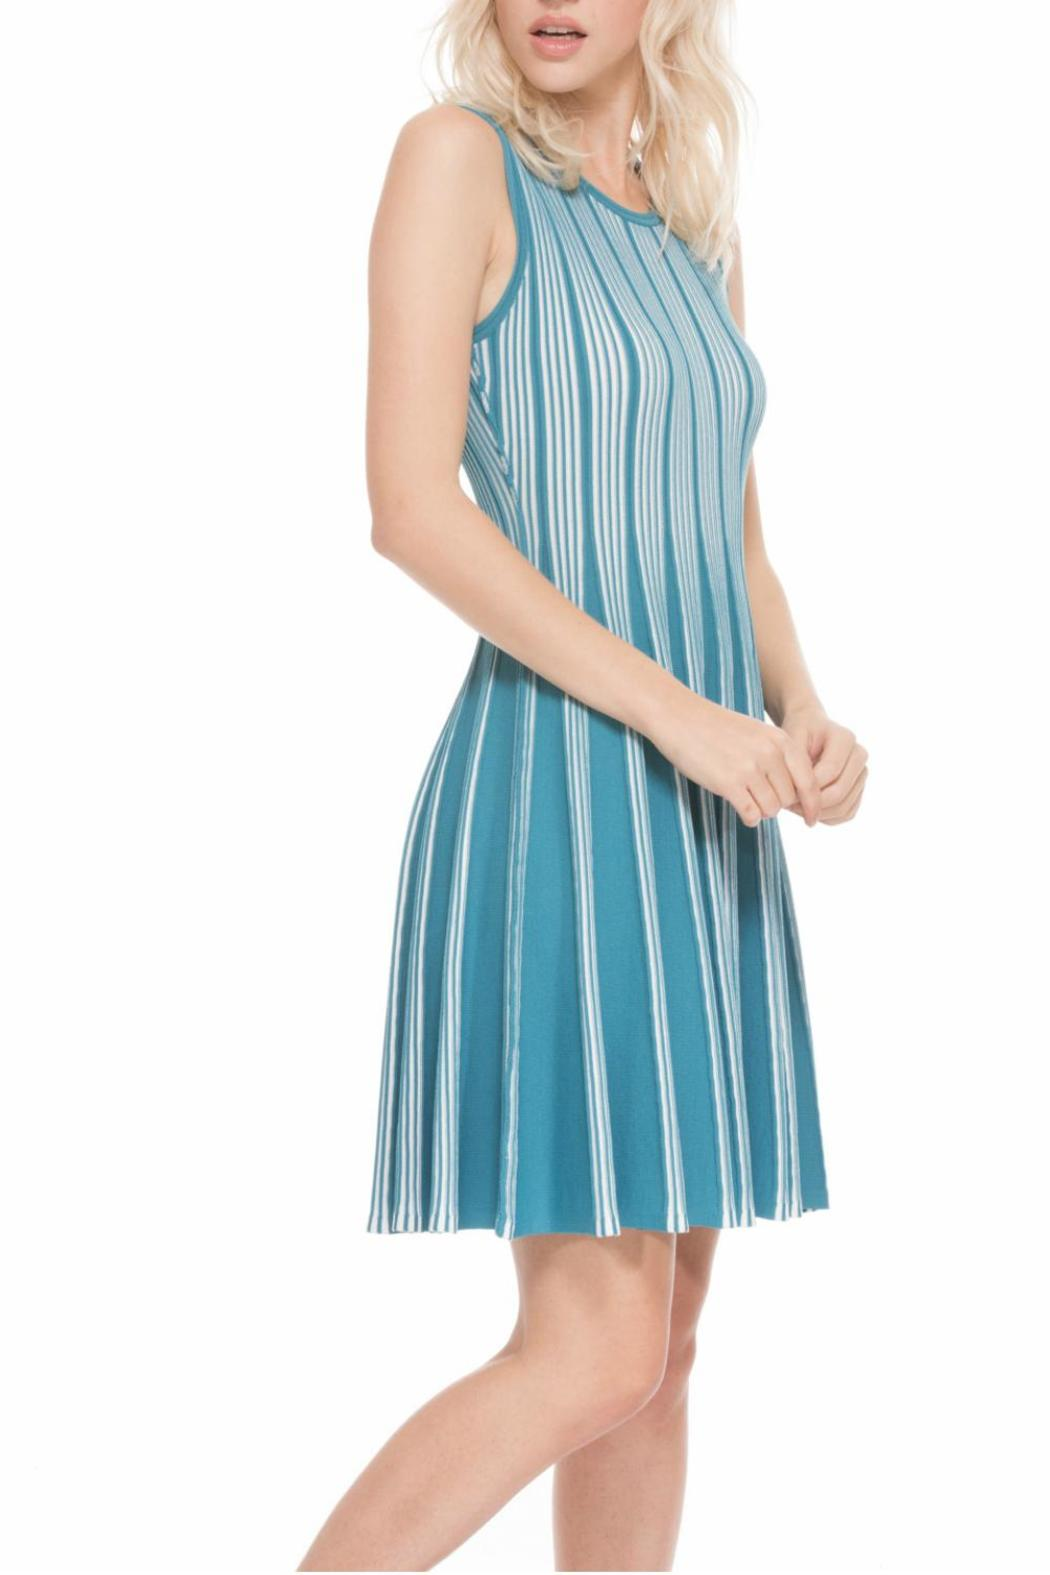 Adore Flare Reversible Dress from New Jersey by Locust Whimsy ...